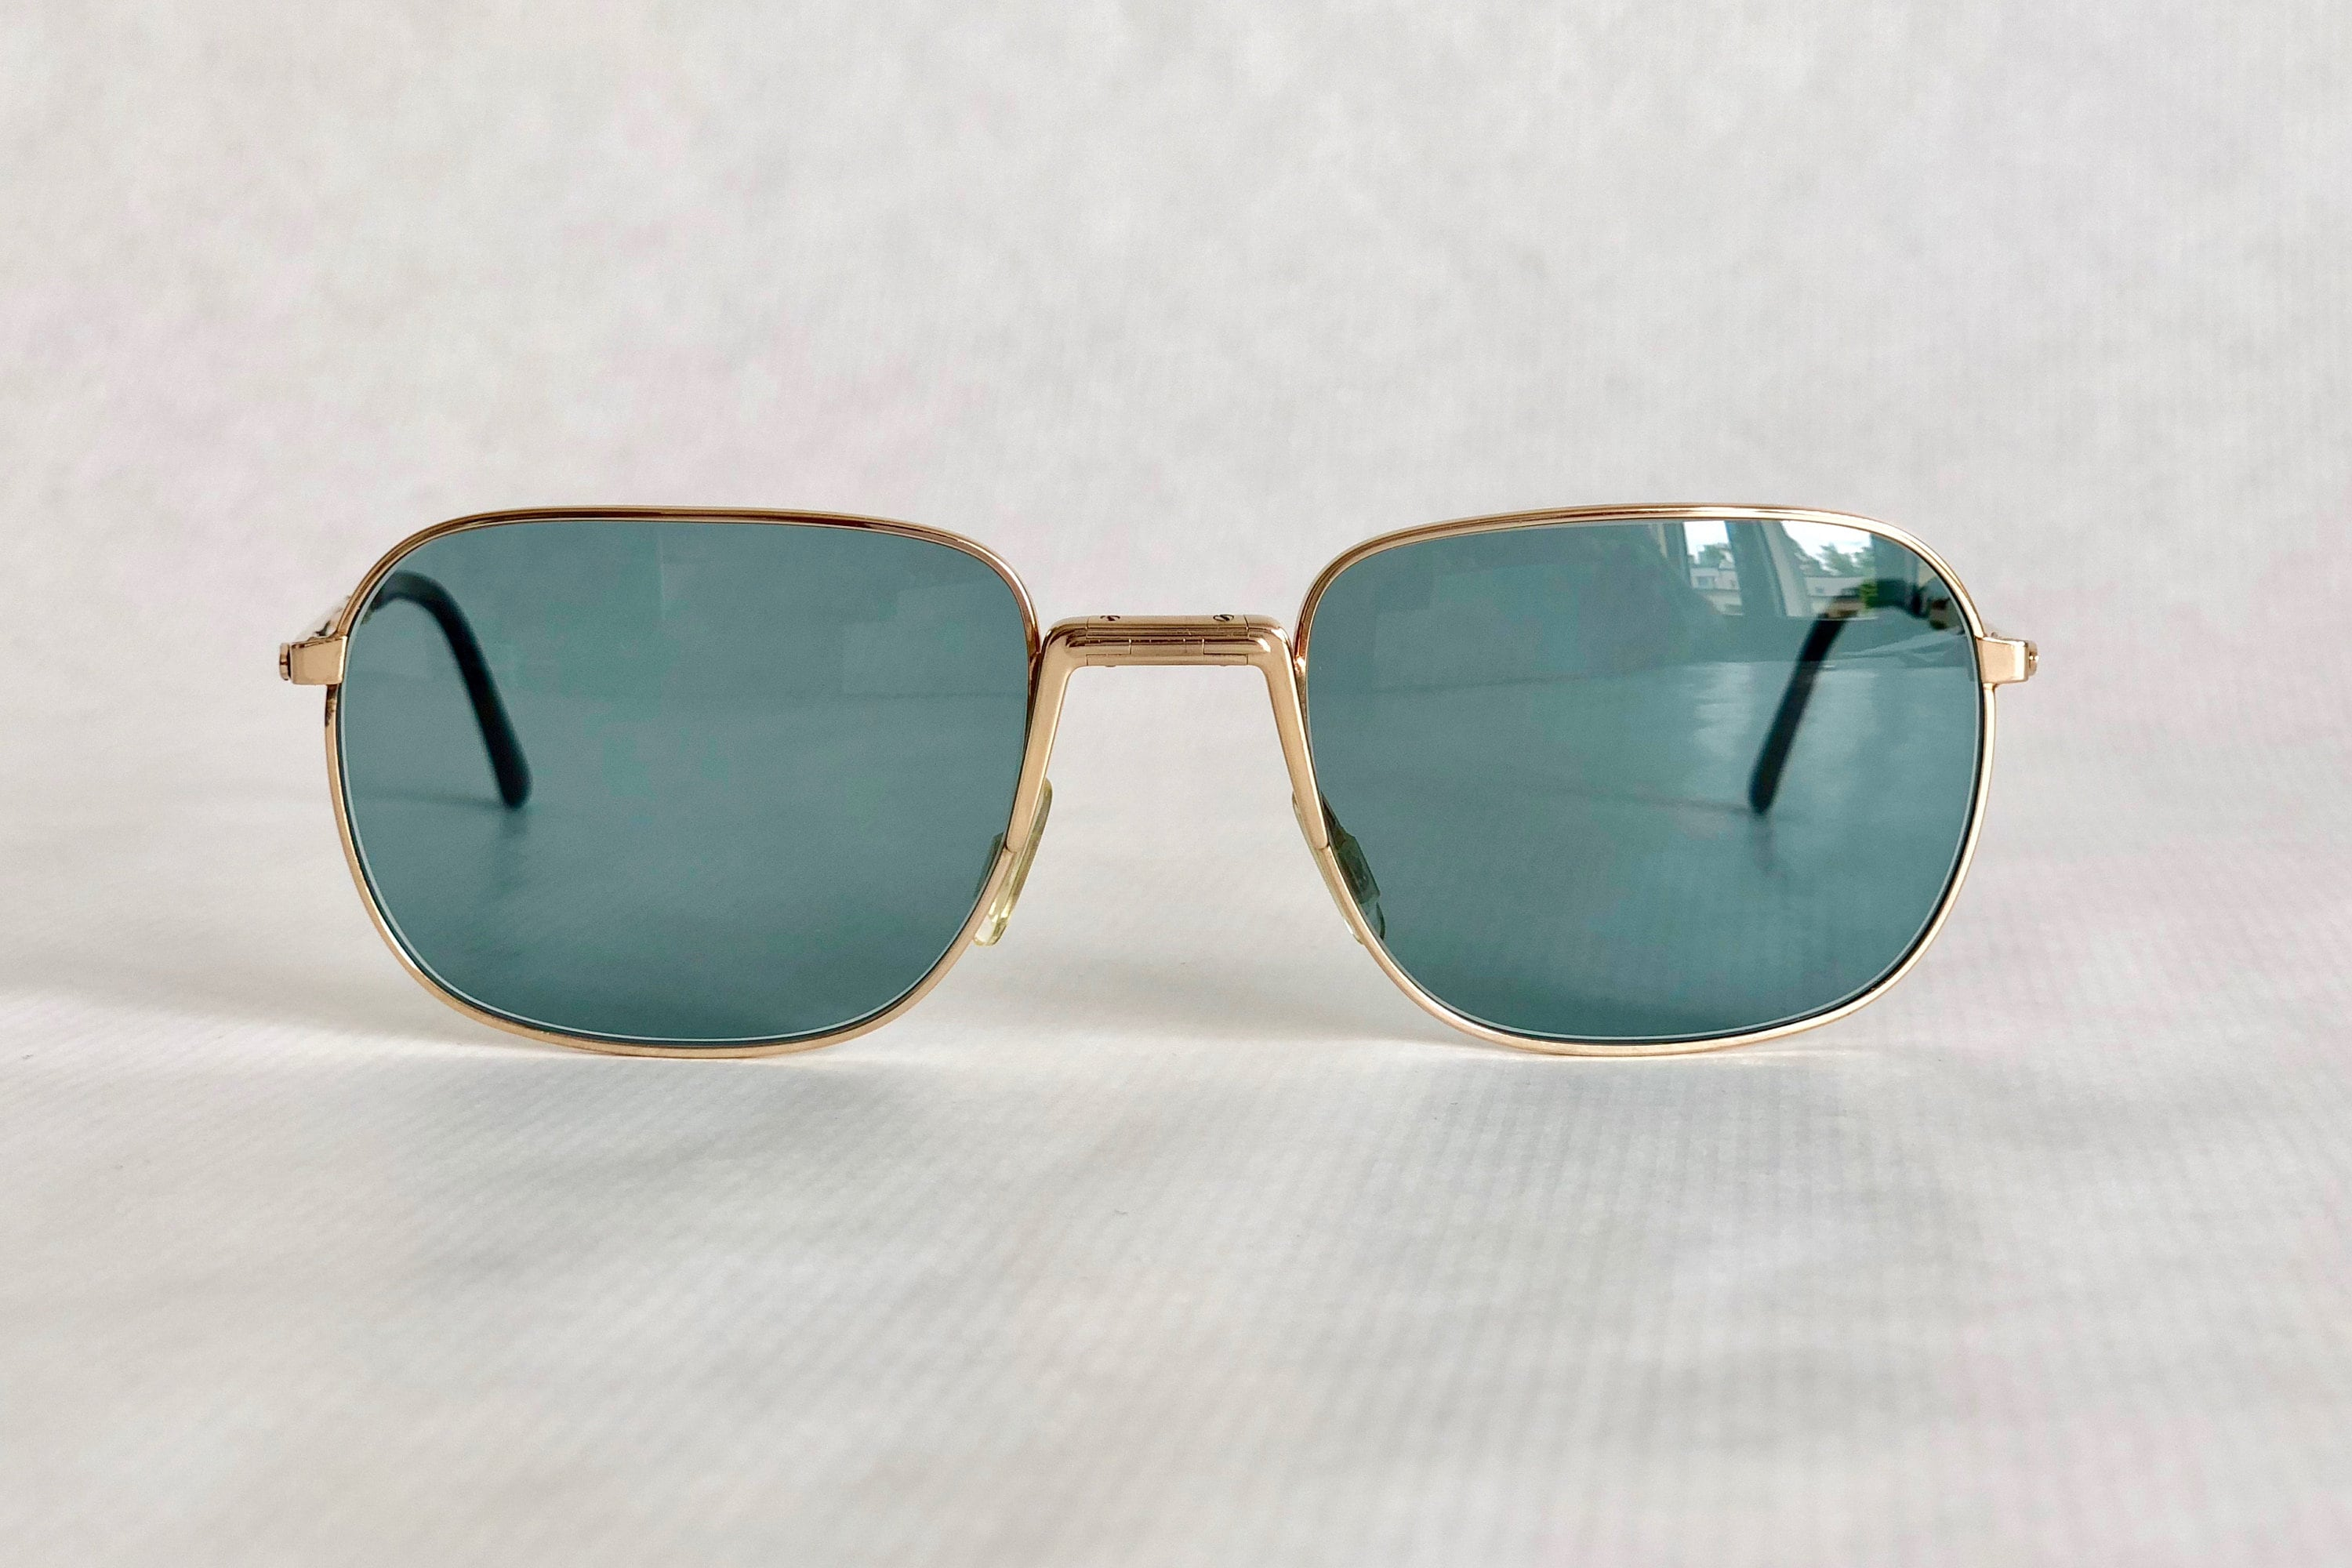 f3a8ab62d78e1 Folding Christian Dior Monsieur 2288 Vintage Sunglasses New Old Stock.  gallery photo ...